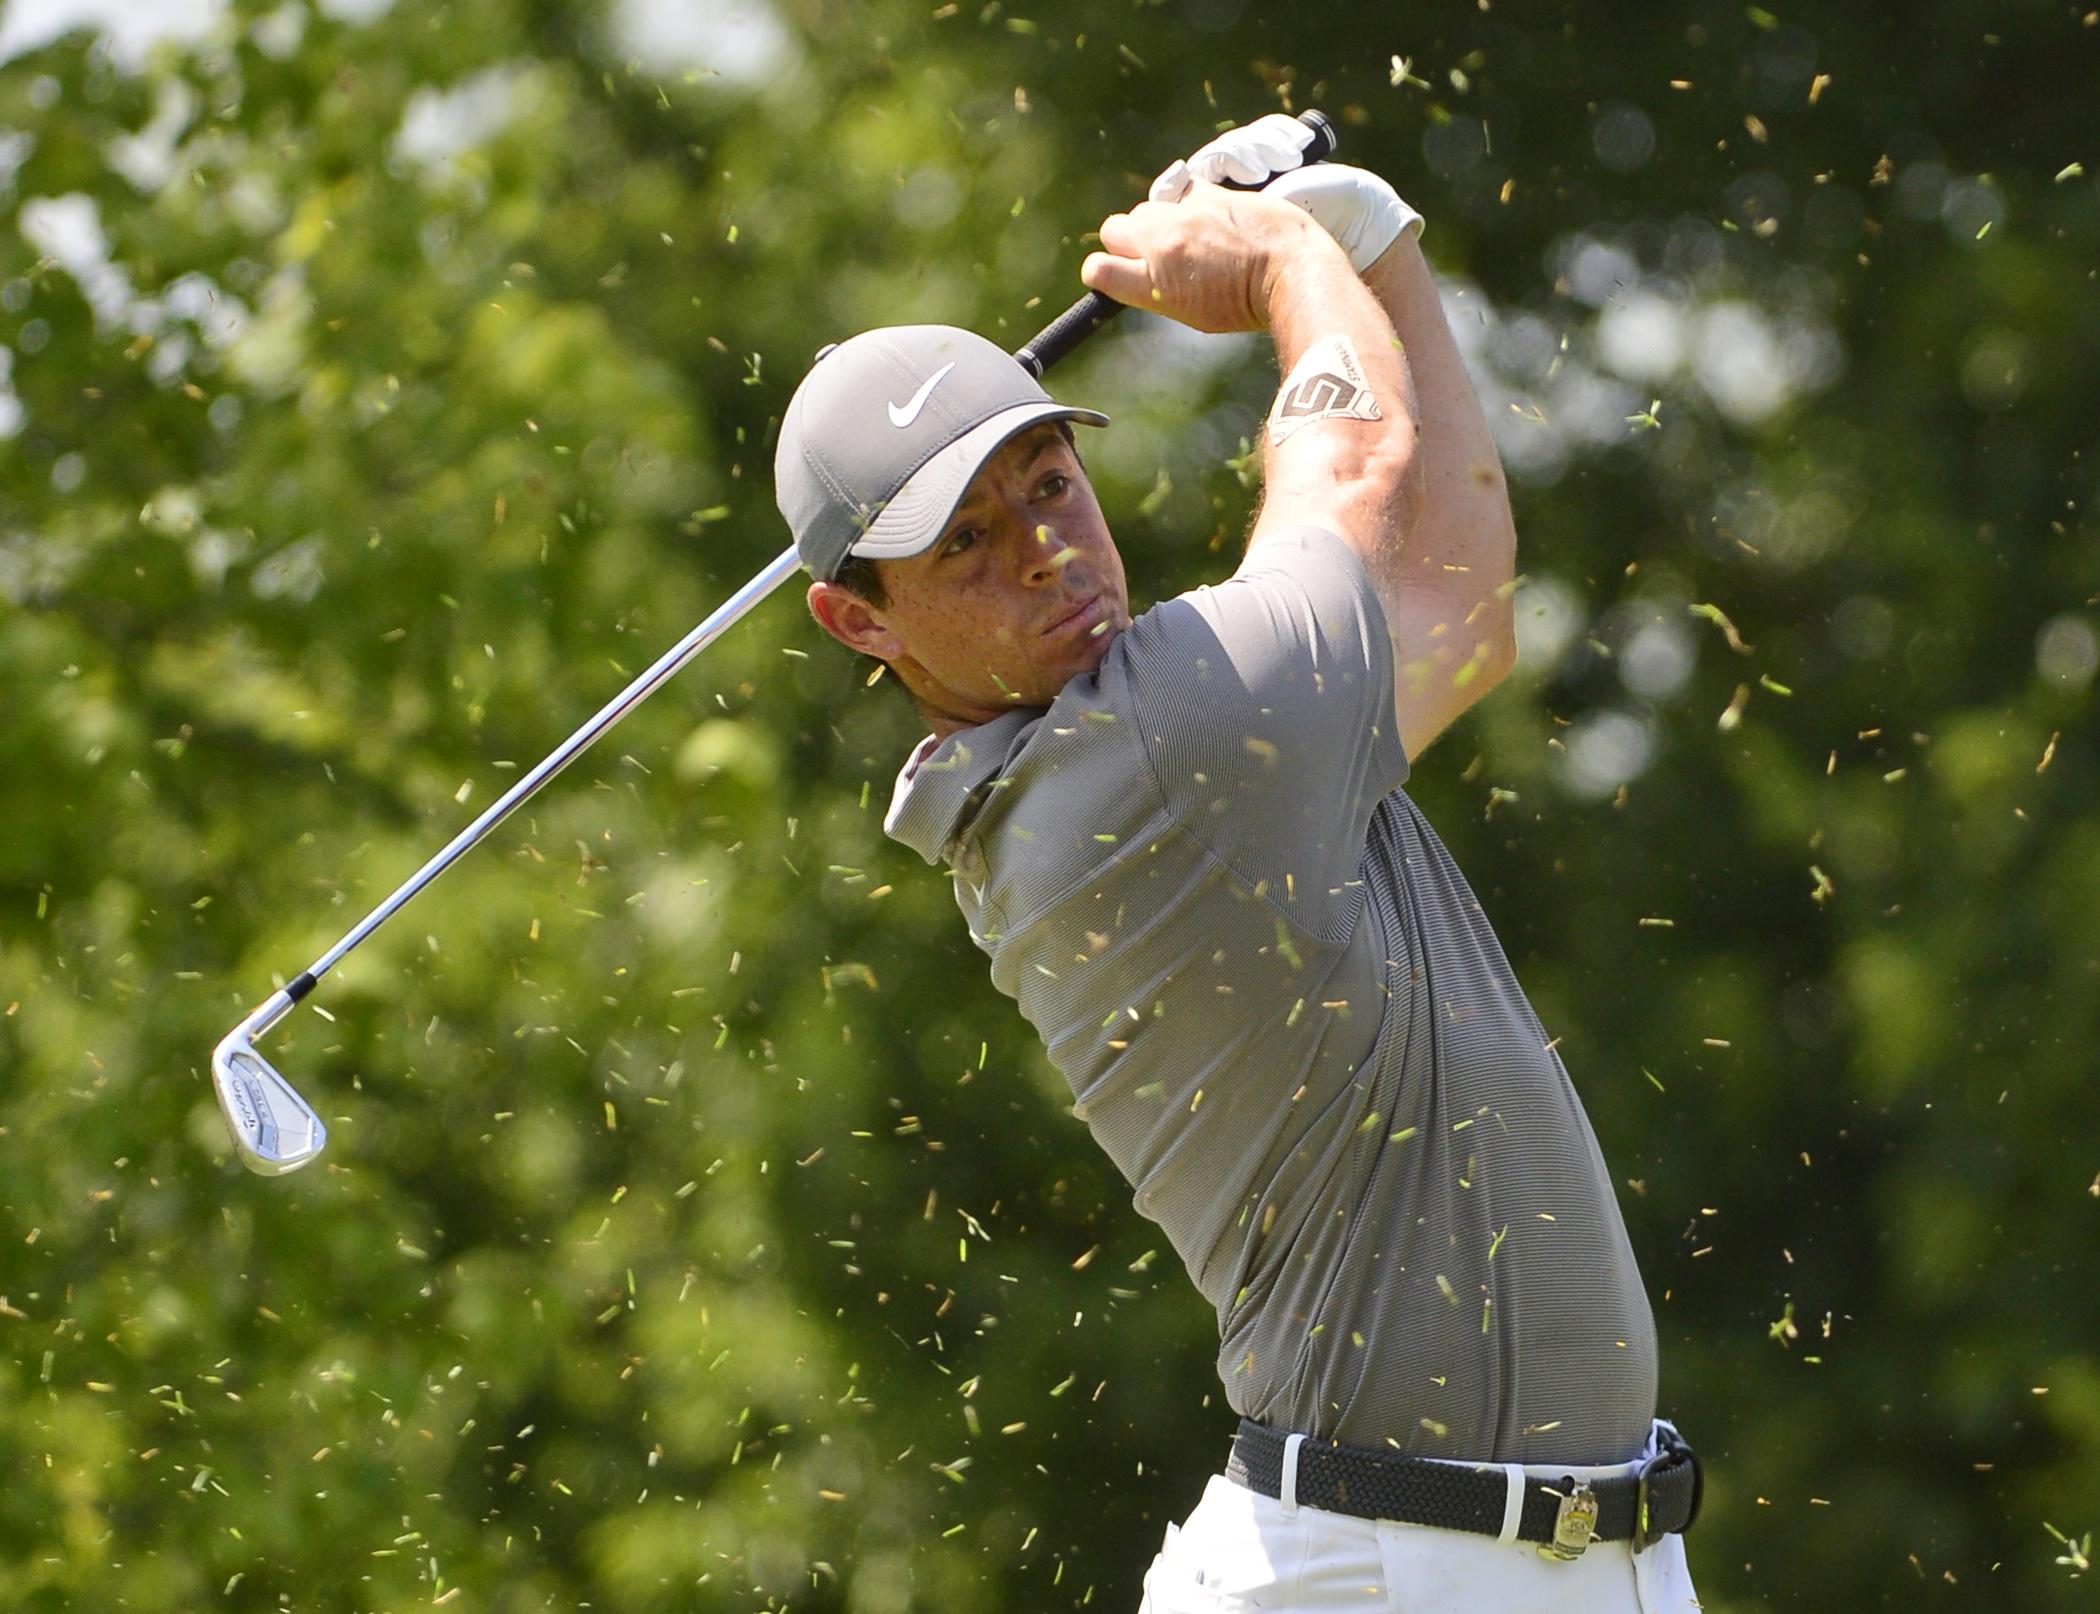 As it stands, McIlroy has done enough to be on the European team